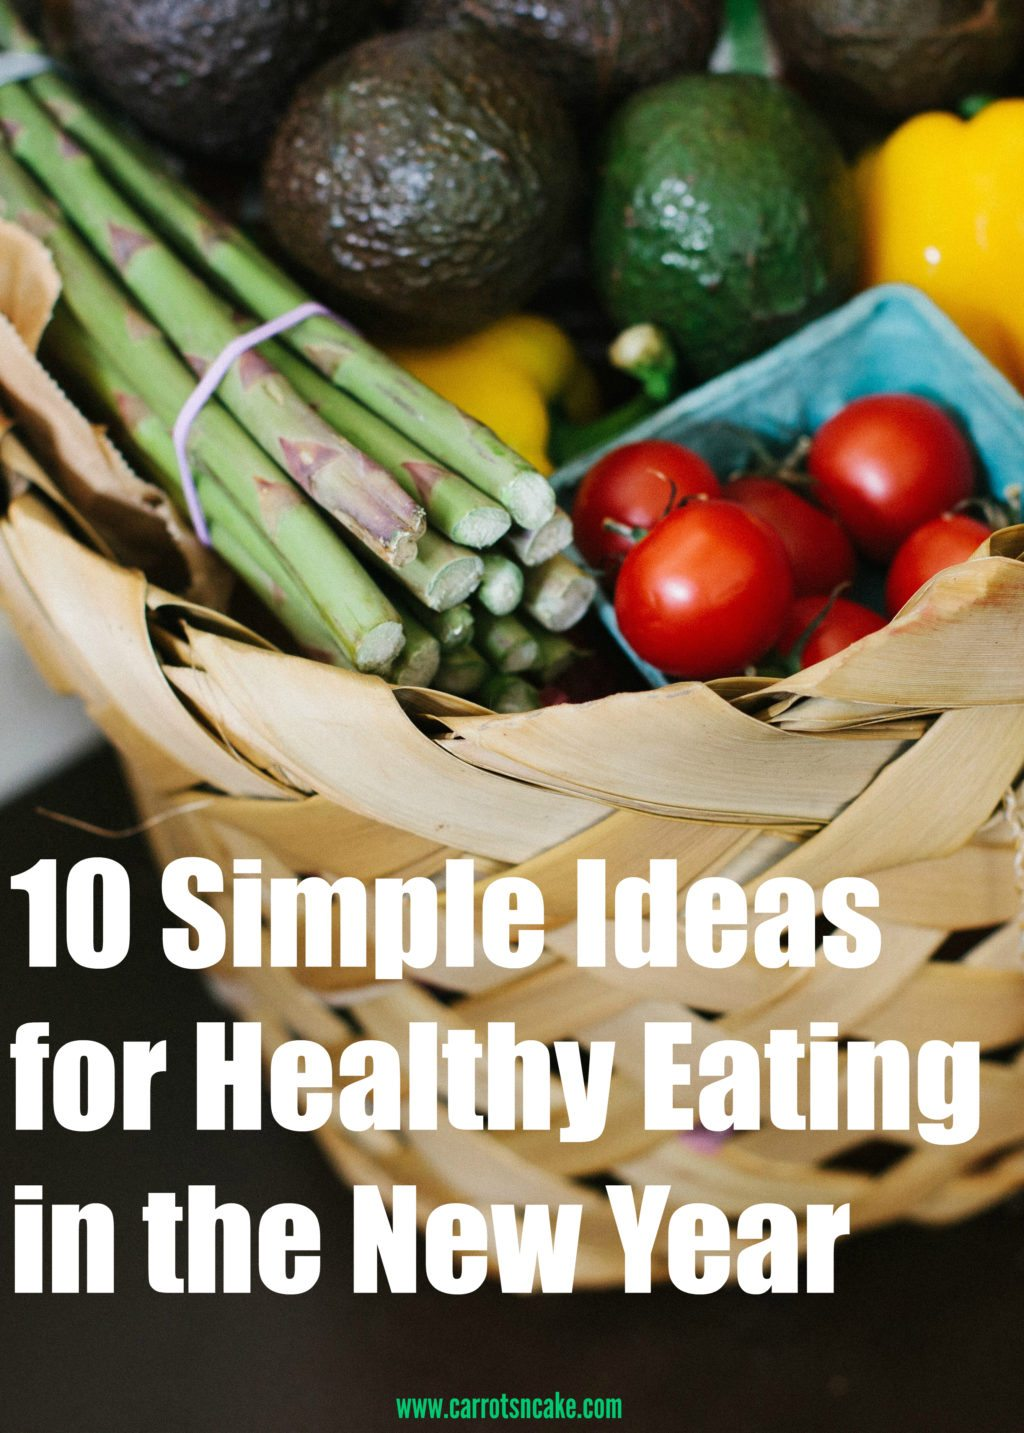 simple-ideas-for-healthy-eating-in-the-new-year